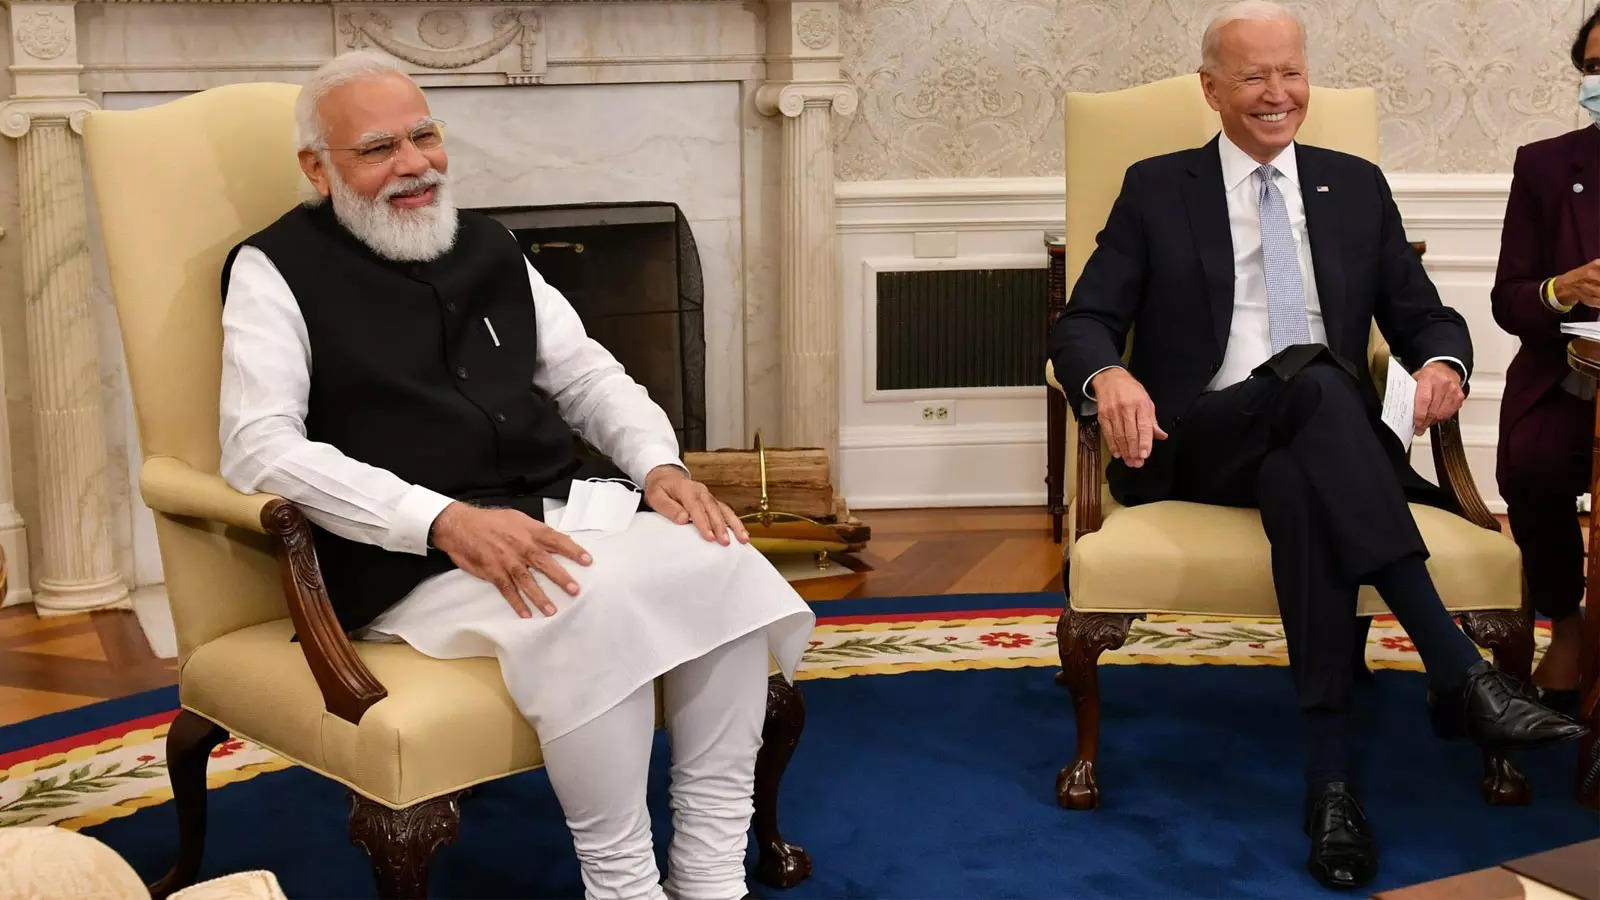 us-india-relationship-can-help-solve-many-global-challenges-president-biden-during-meet-with-pm-modi